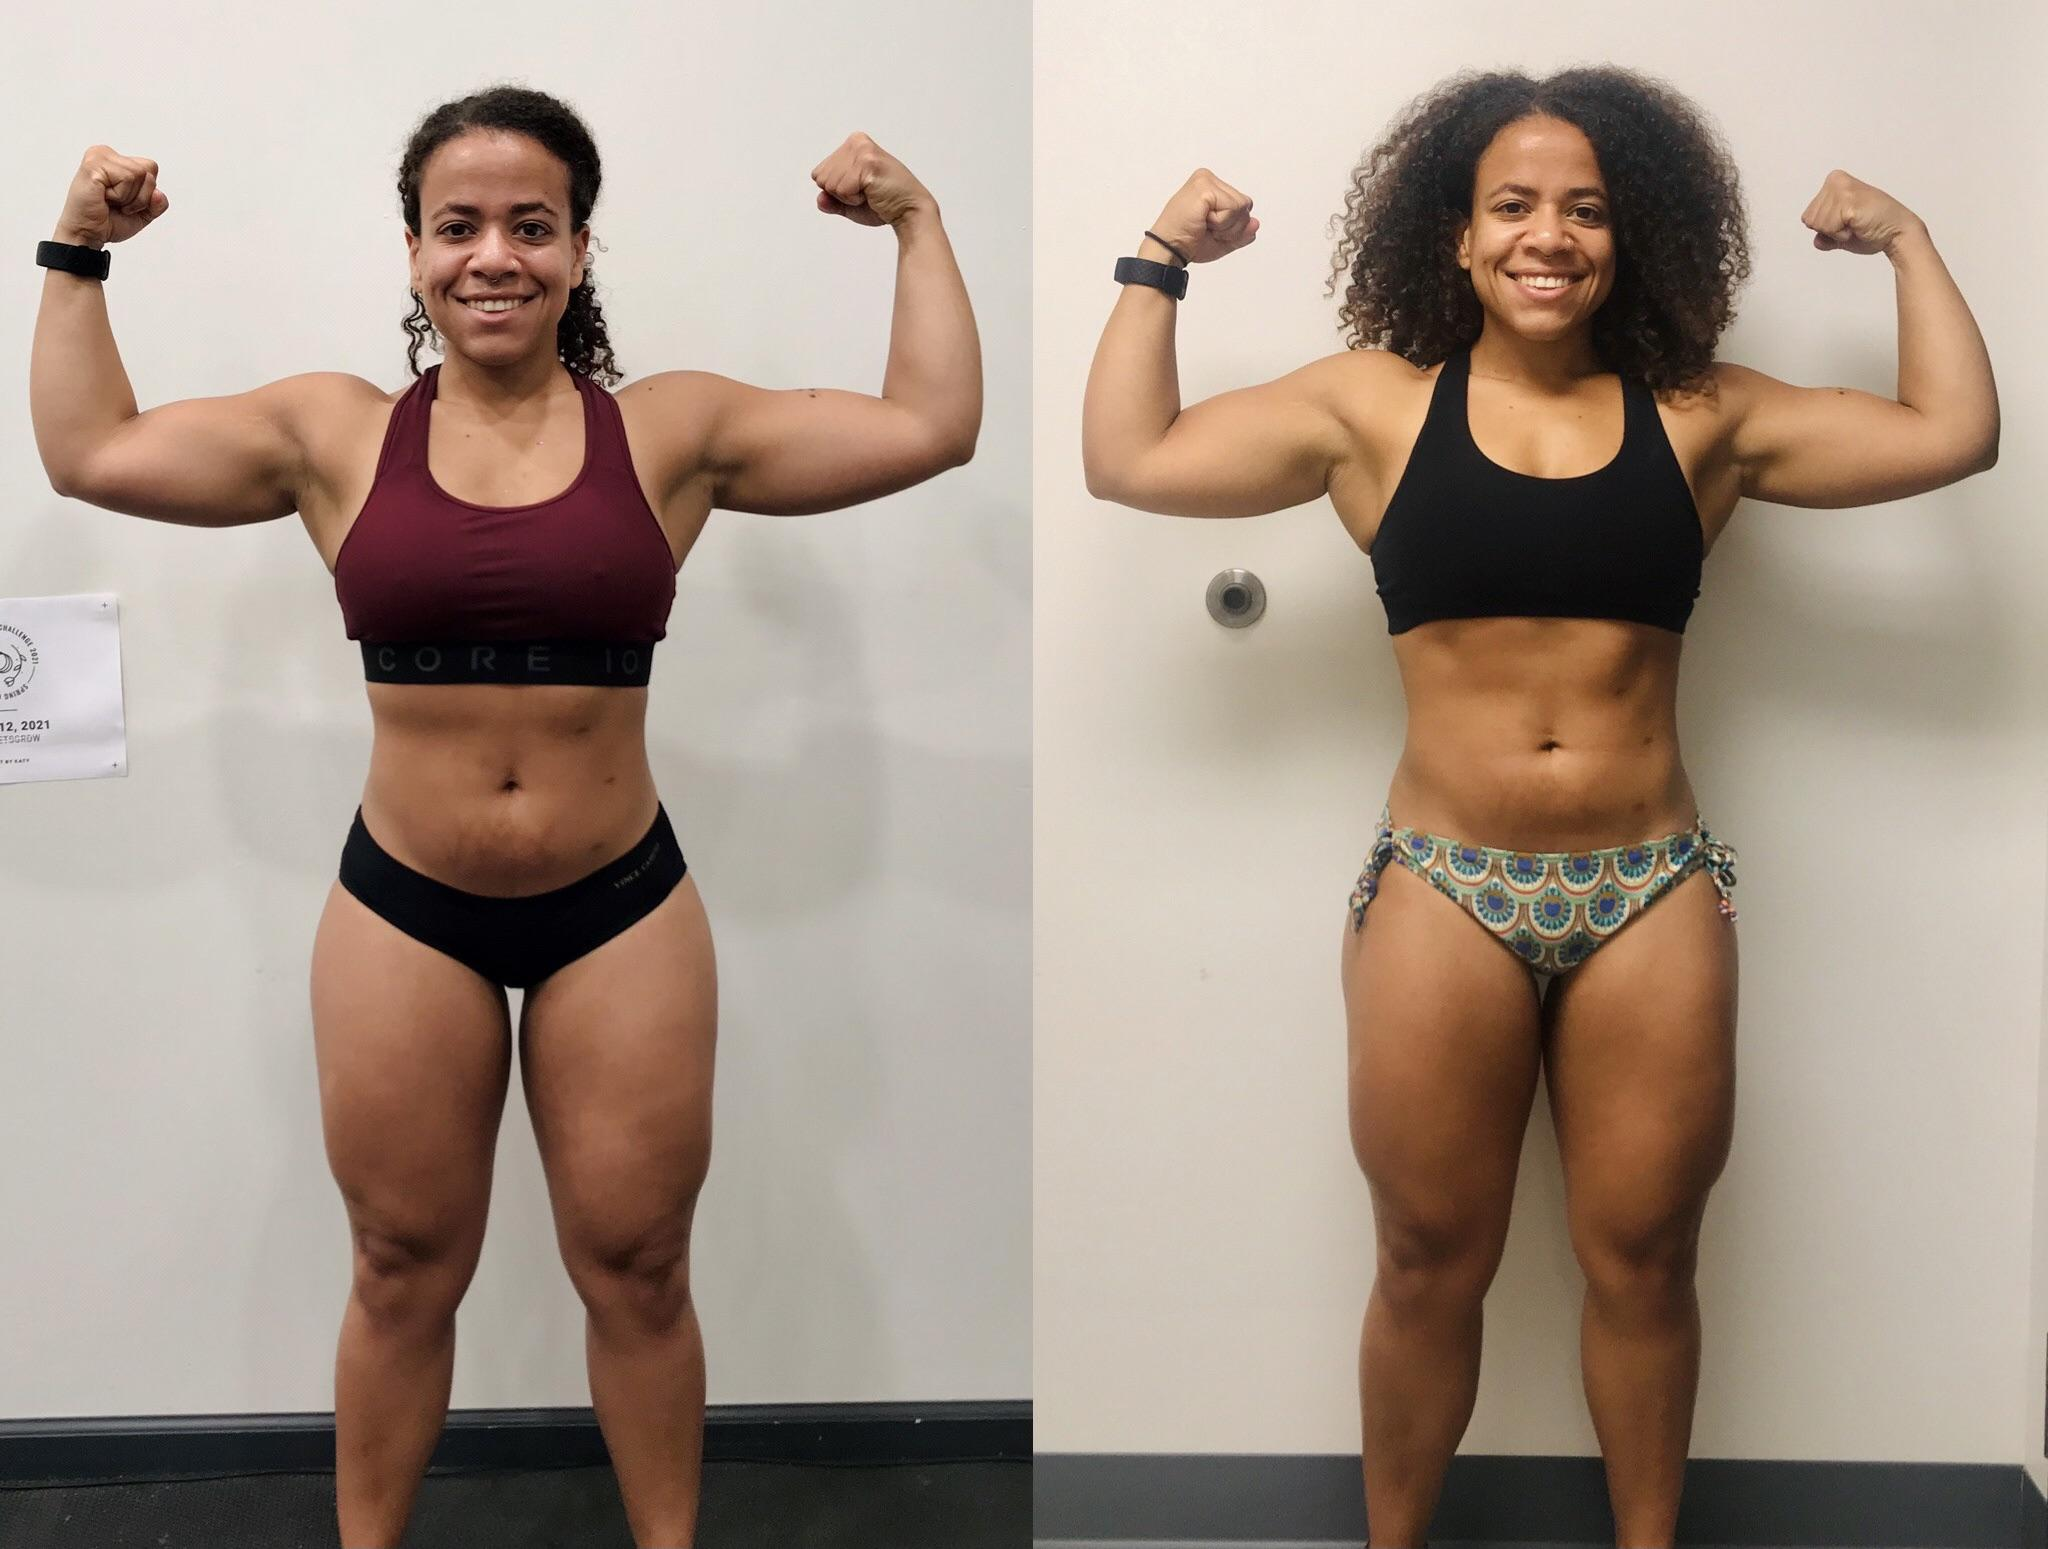 4 foot 11 Female 2 lbs Weight Loss 134 lbs to 132 lbs